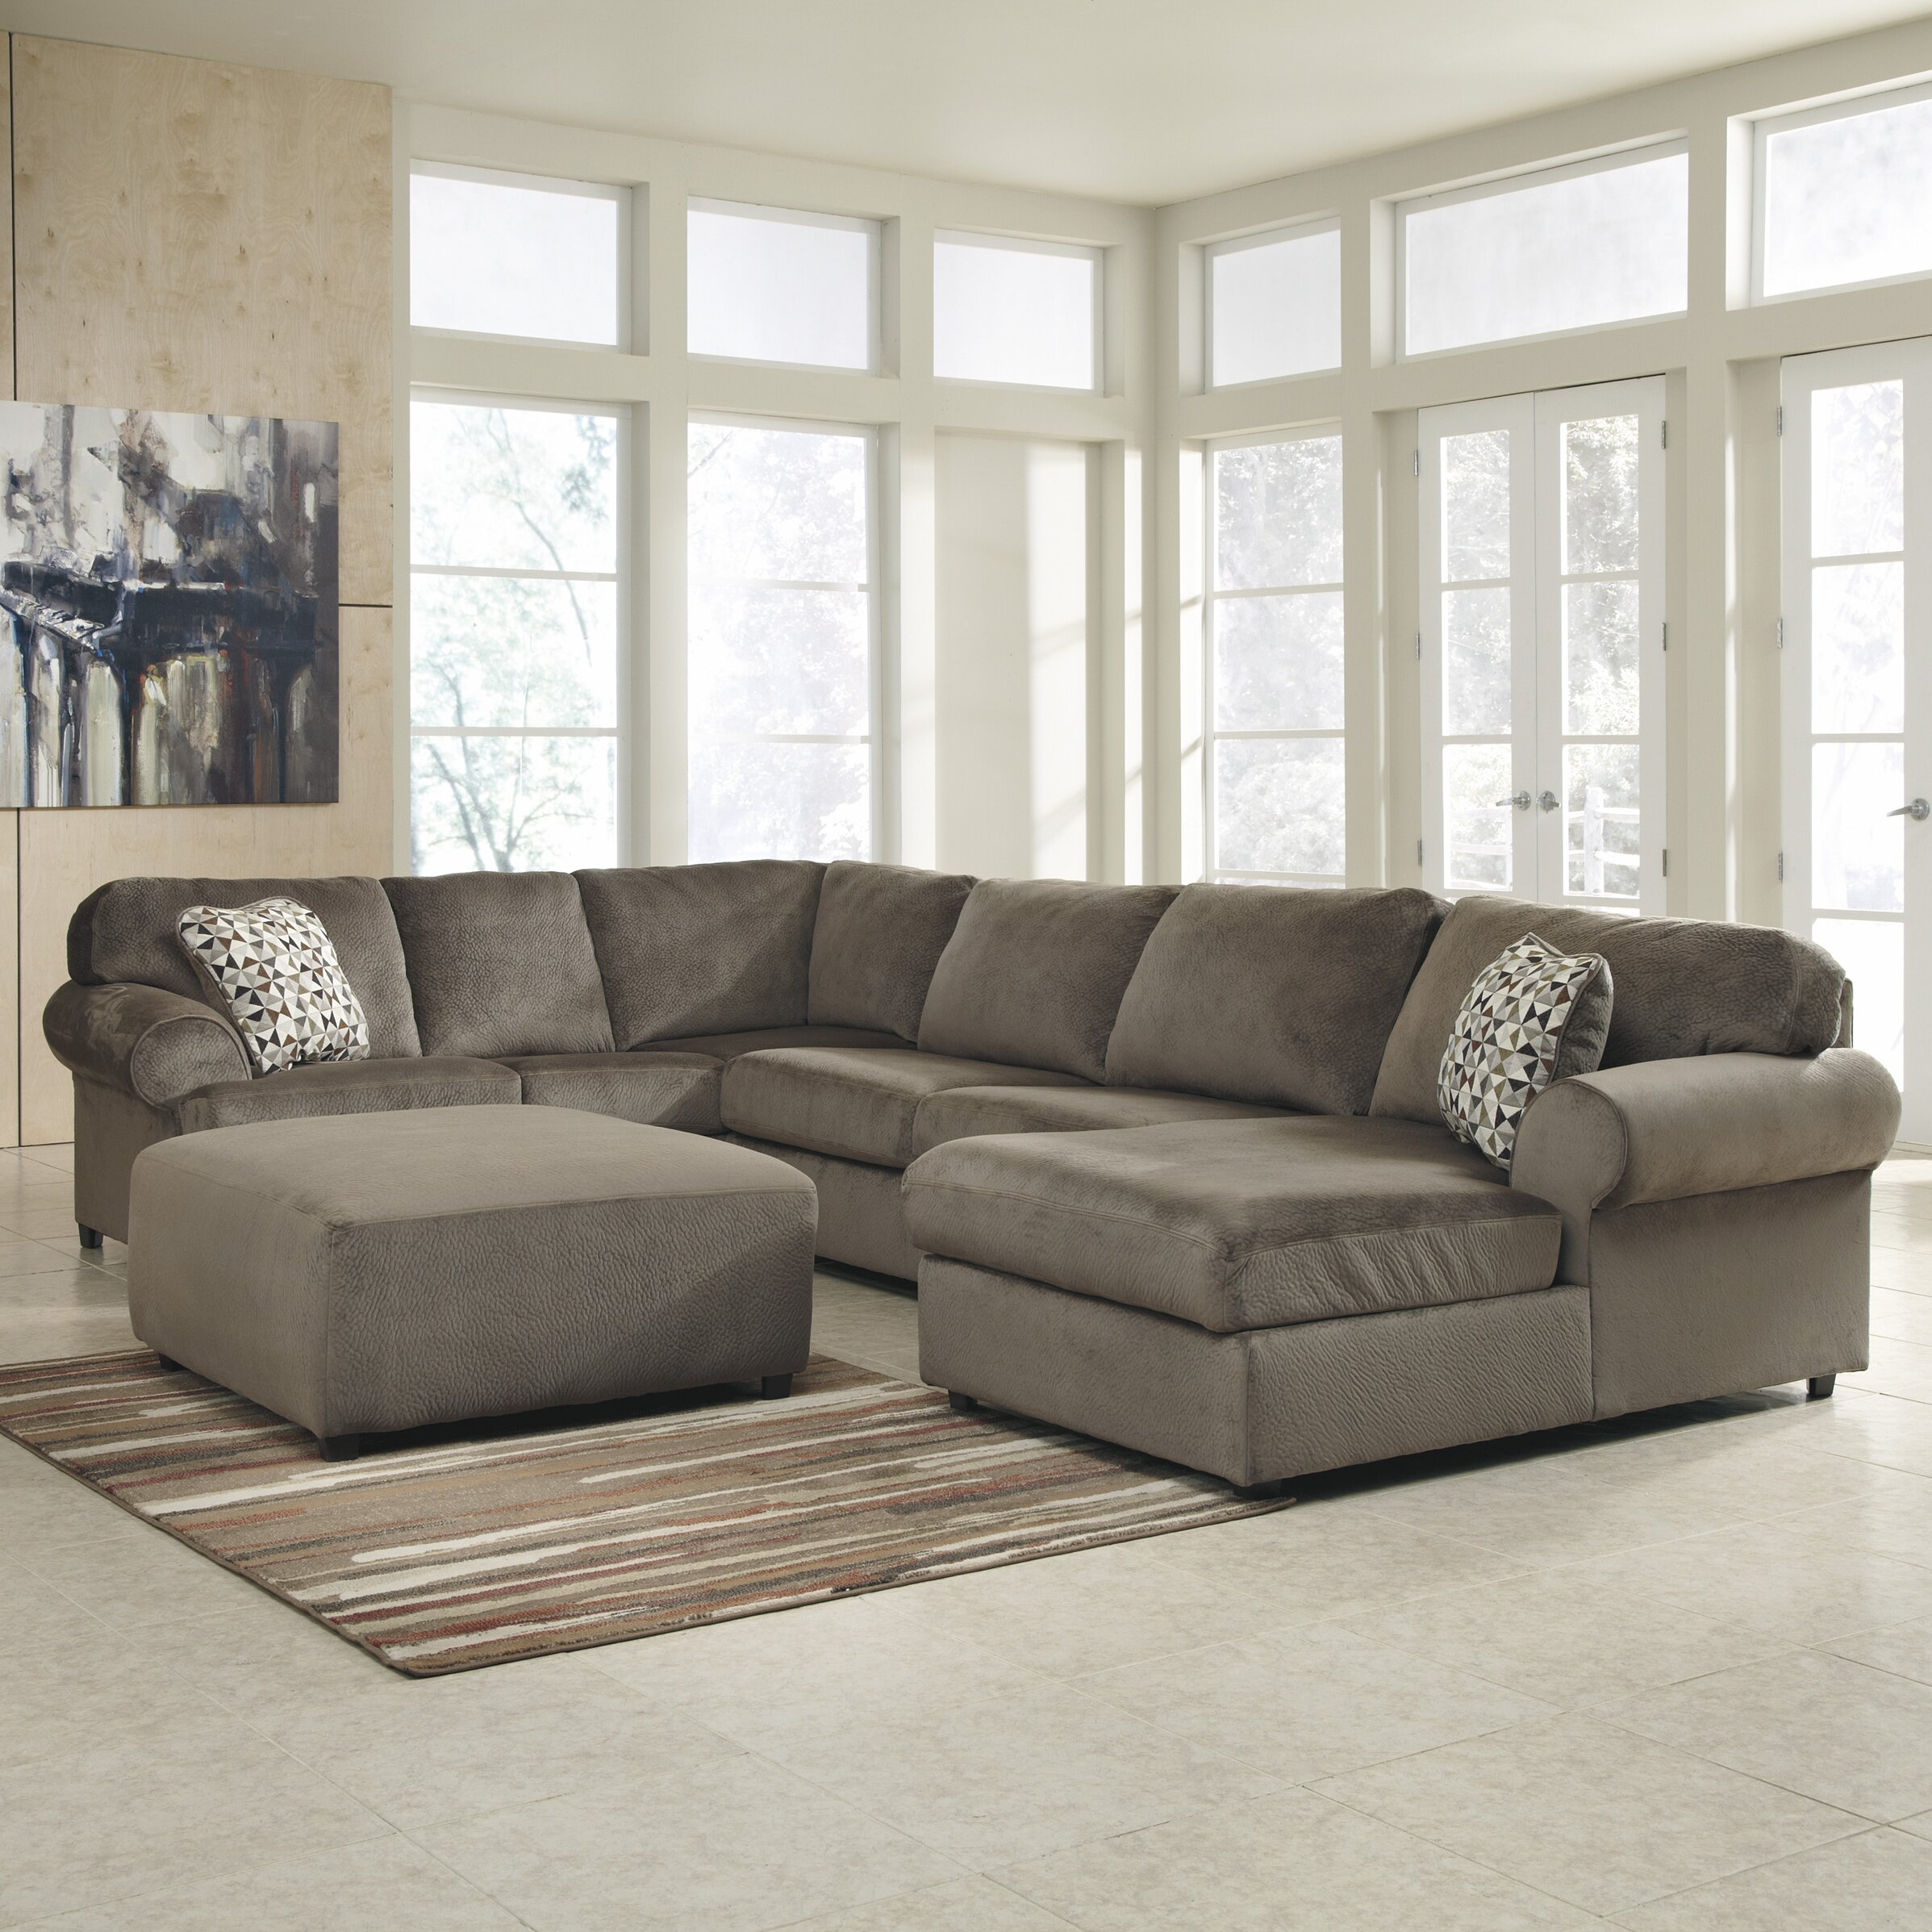 Charlton Home Brewster Sectional Reviews Wayfair